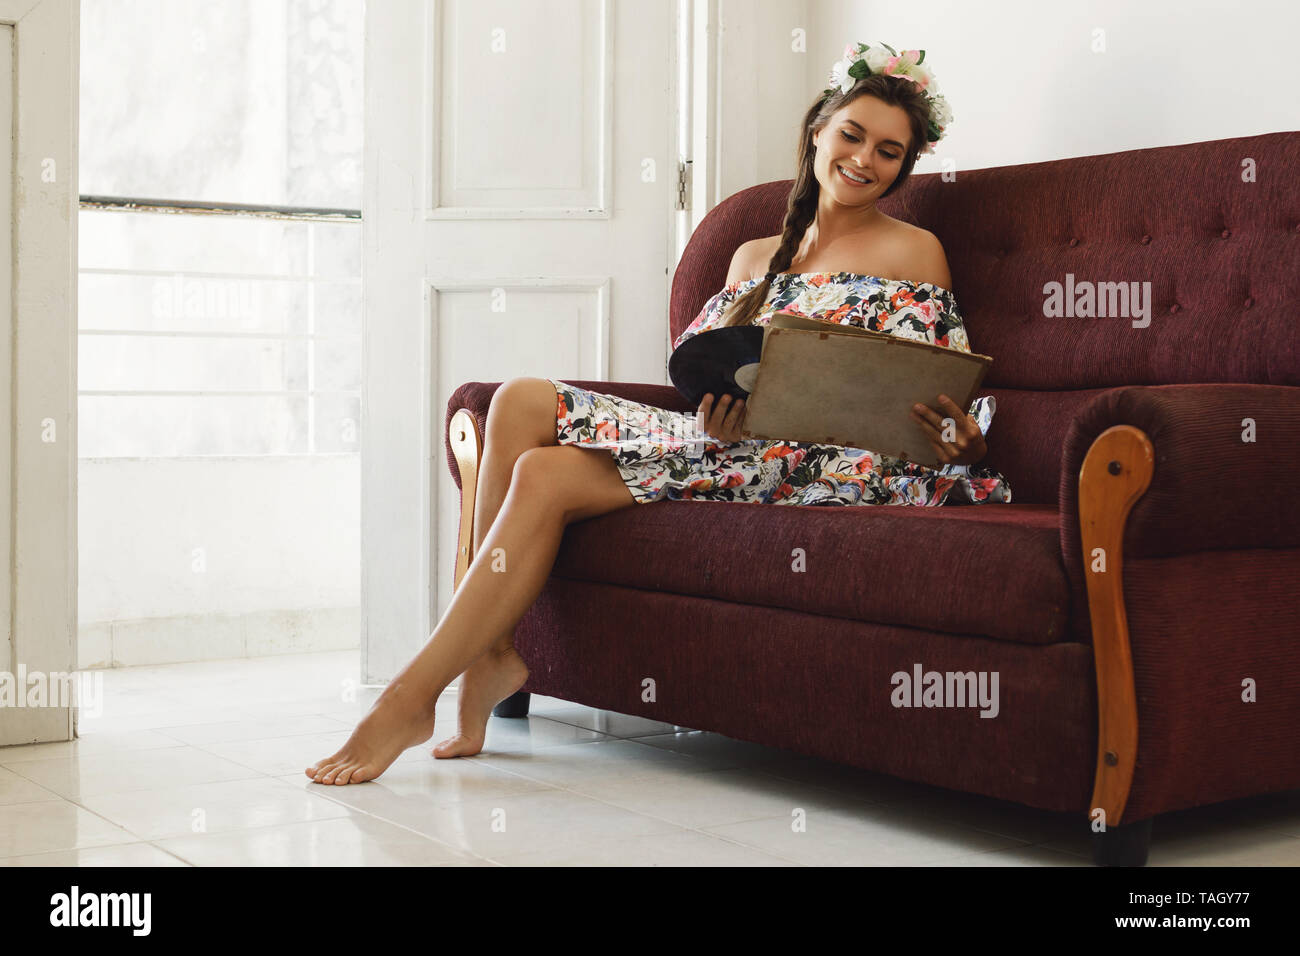 Old Woman Sitting Alone Sofa Stock Photos Old Woman Sitting